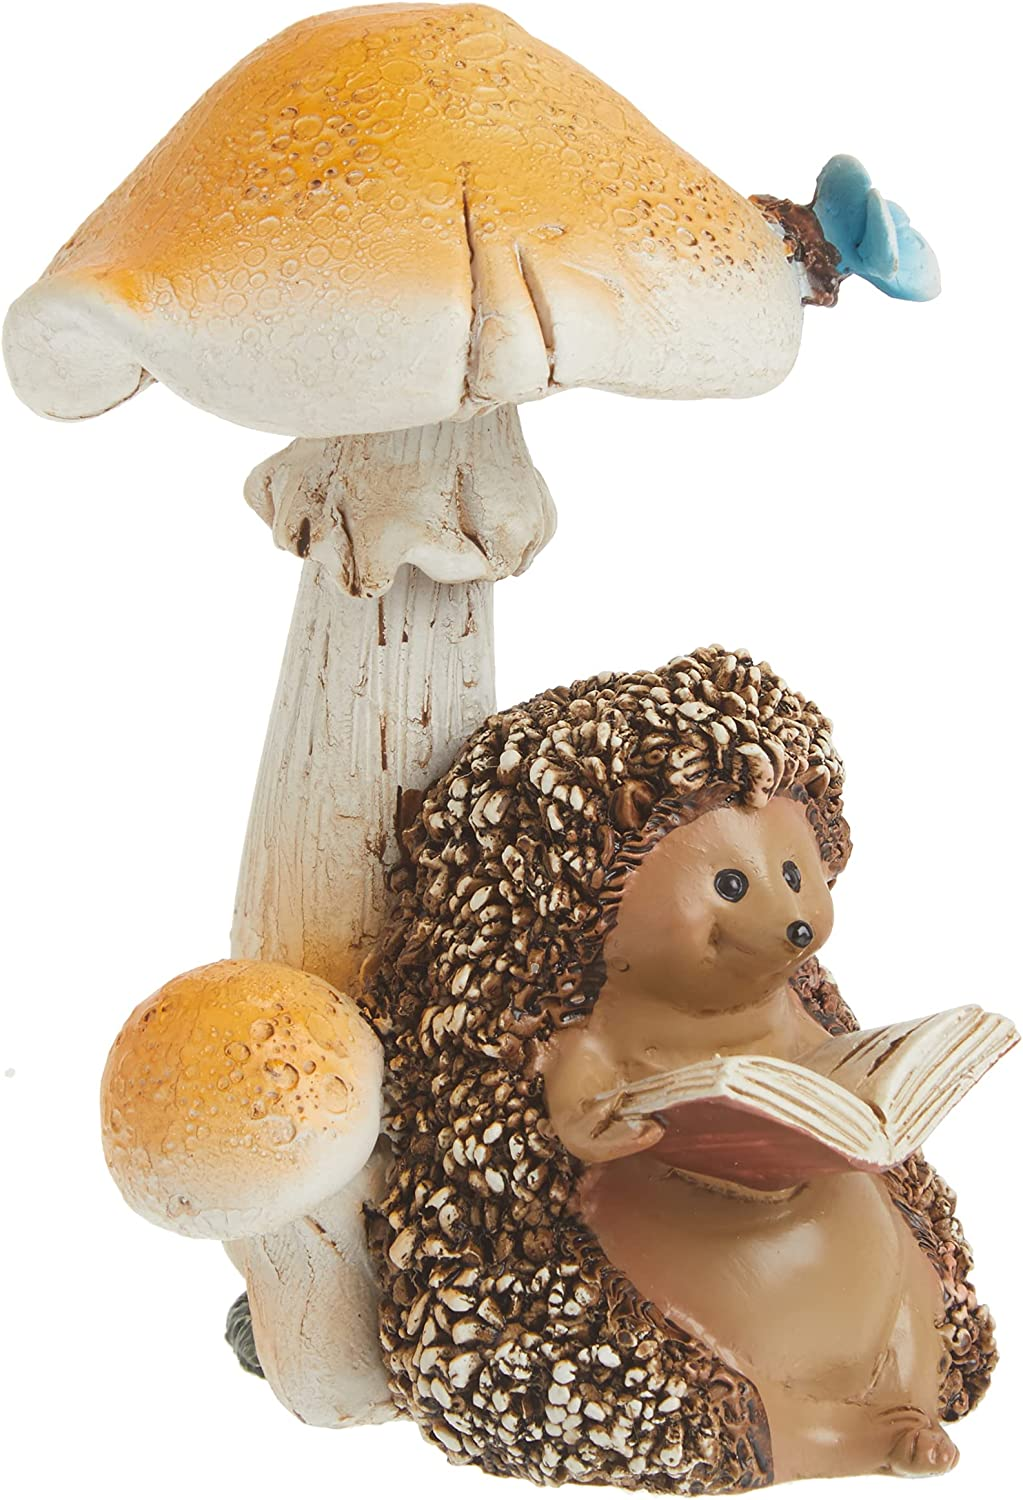 Top Collection Miniature Max 72% OFF Fairy Garden Hedgehog New Free Shipping Terrarium and Rea